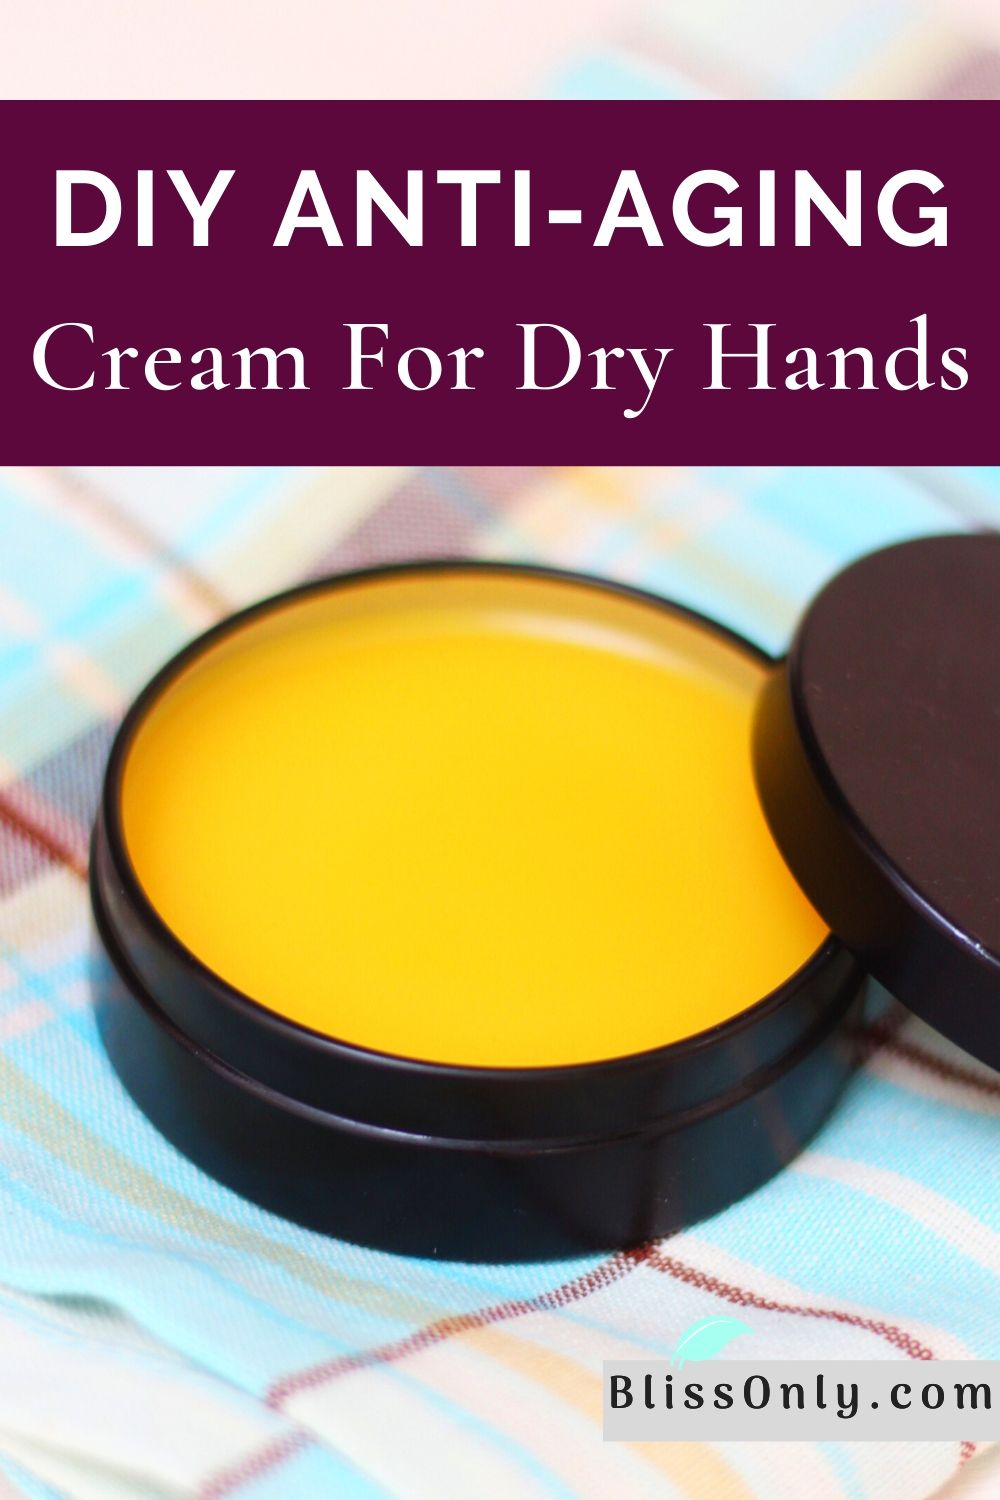 anti-aging cream for dry hands